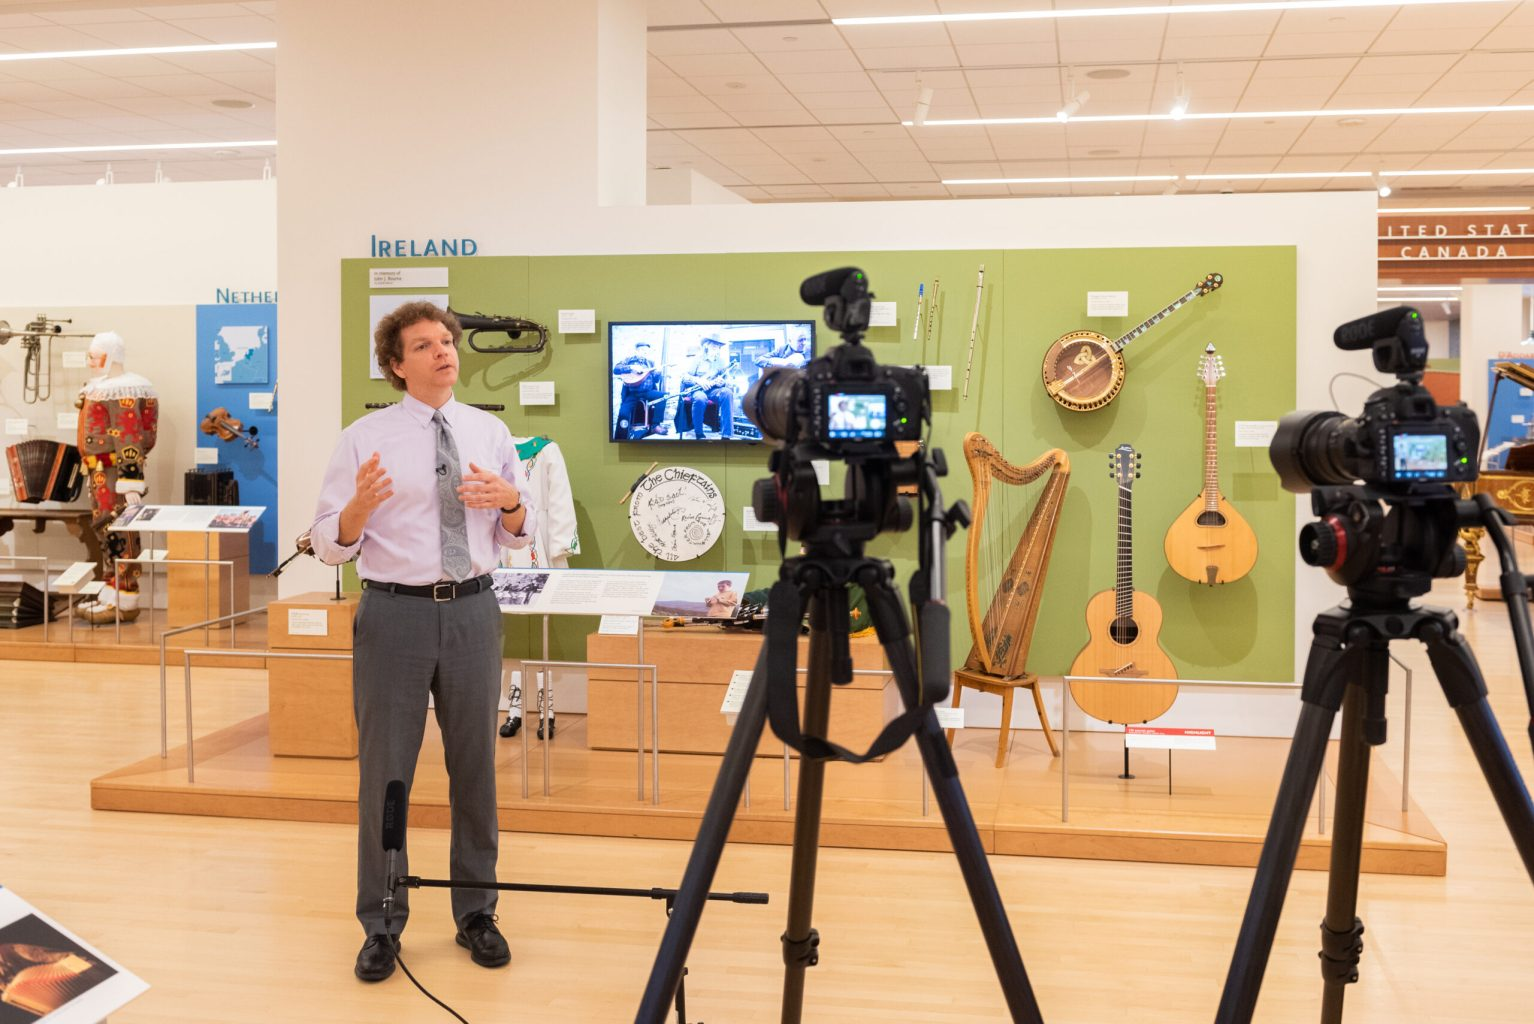 A person speaking in a museum gallery of musical instruments from Ireland in front of cameras